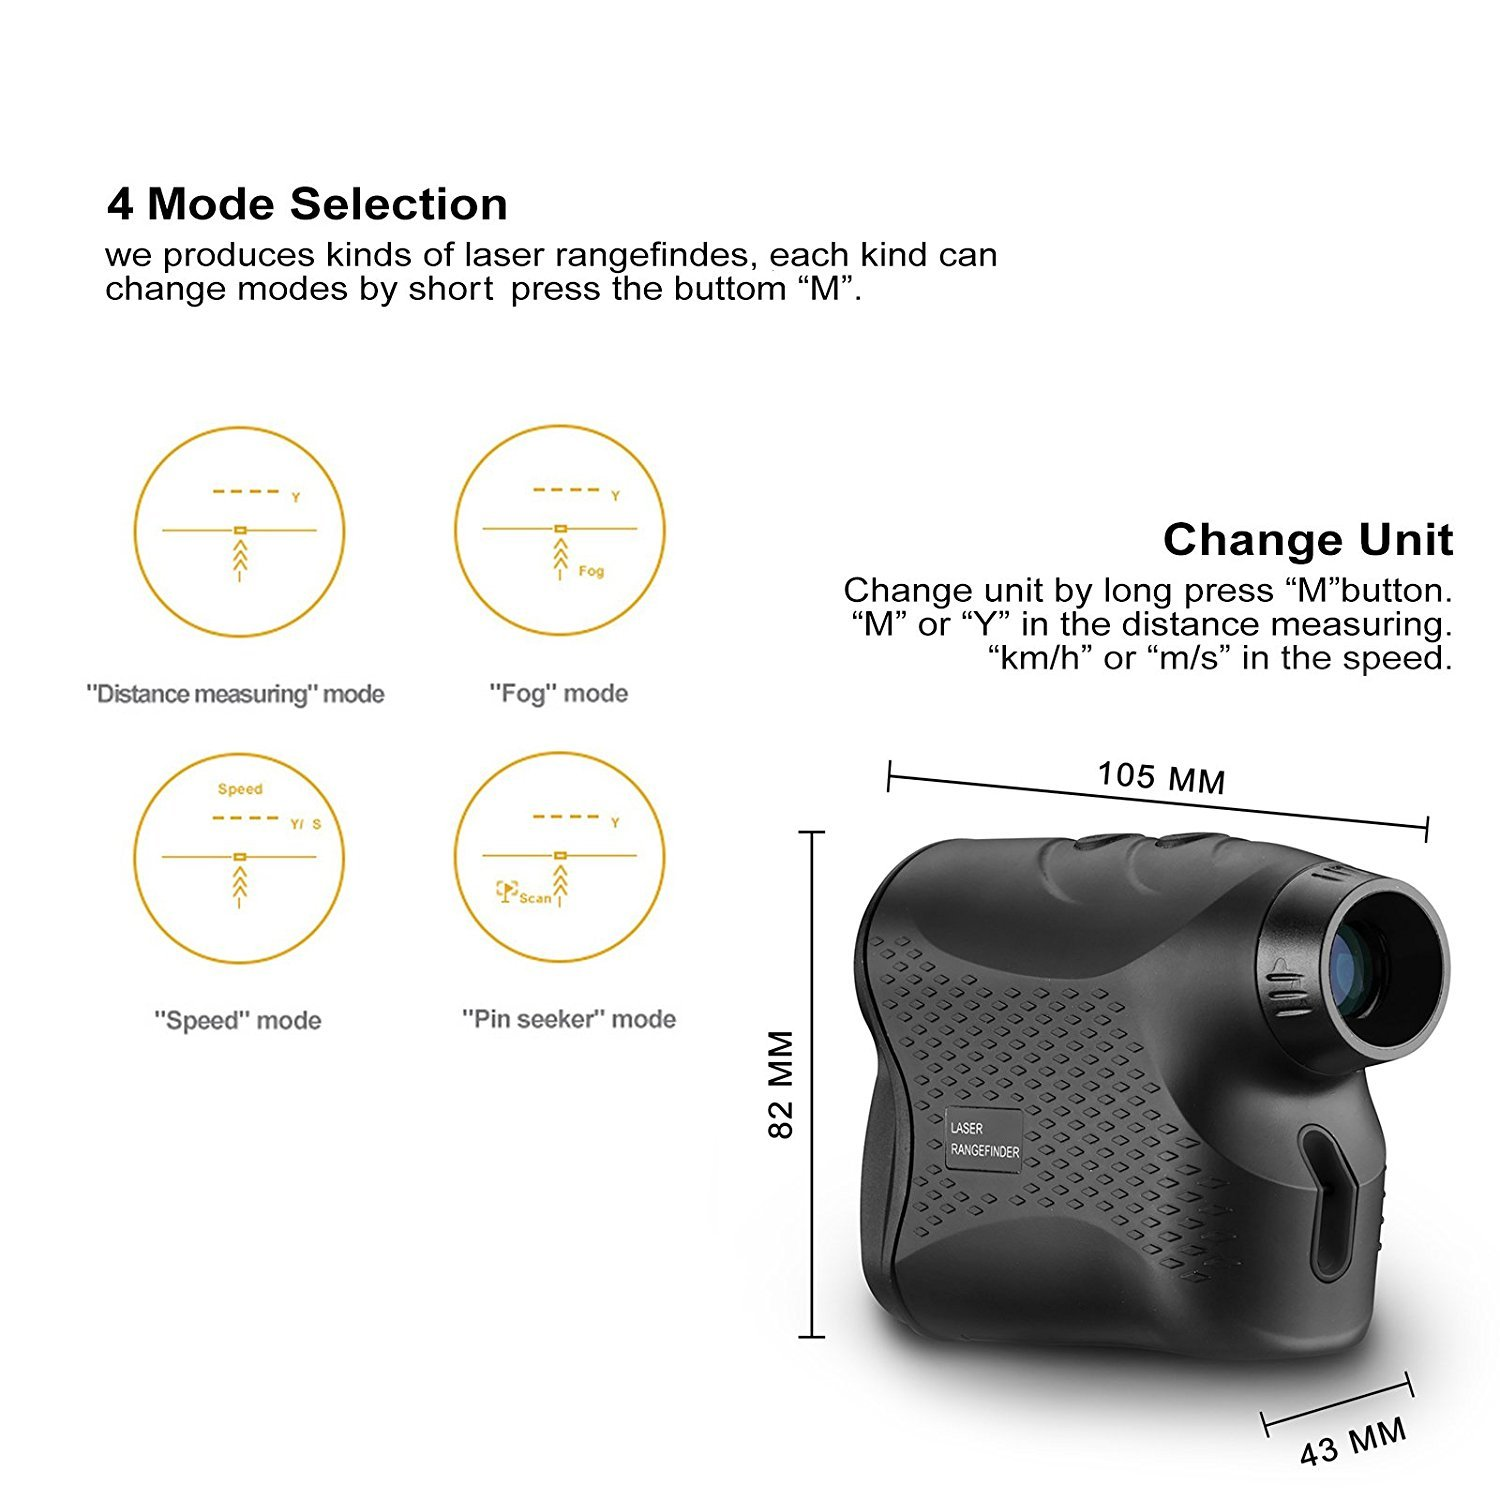 DEKO Golf Laser Rangefinder,Laser Range Finder with Slope, Fog,Scan,Precision Speed Measurement by DEKO (Image #3)